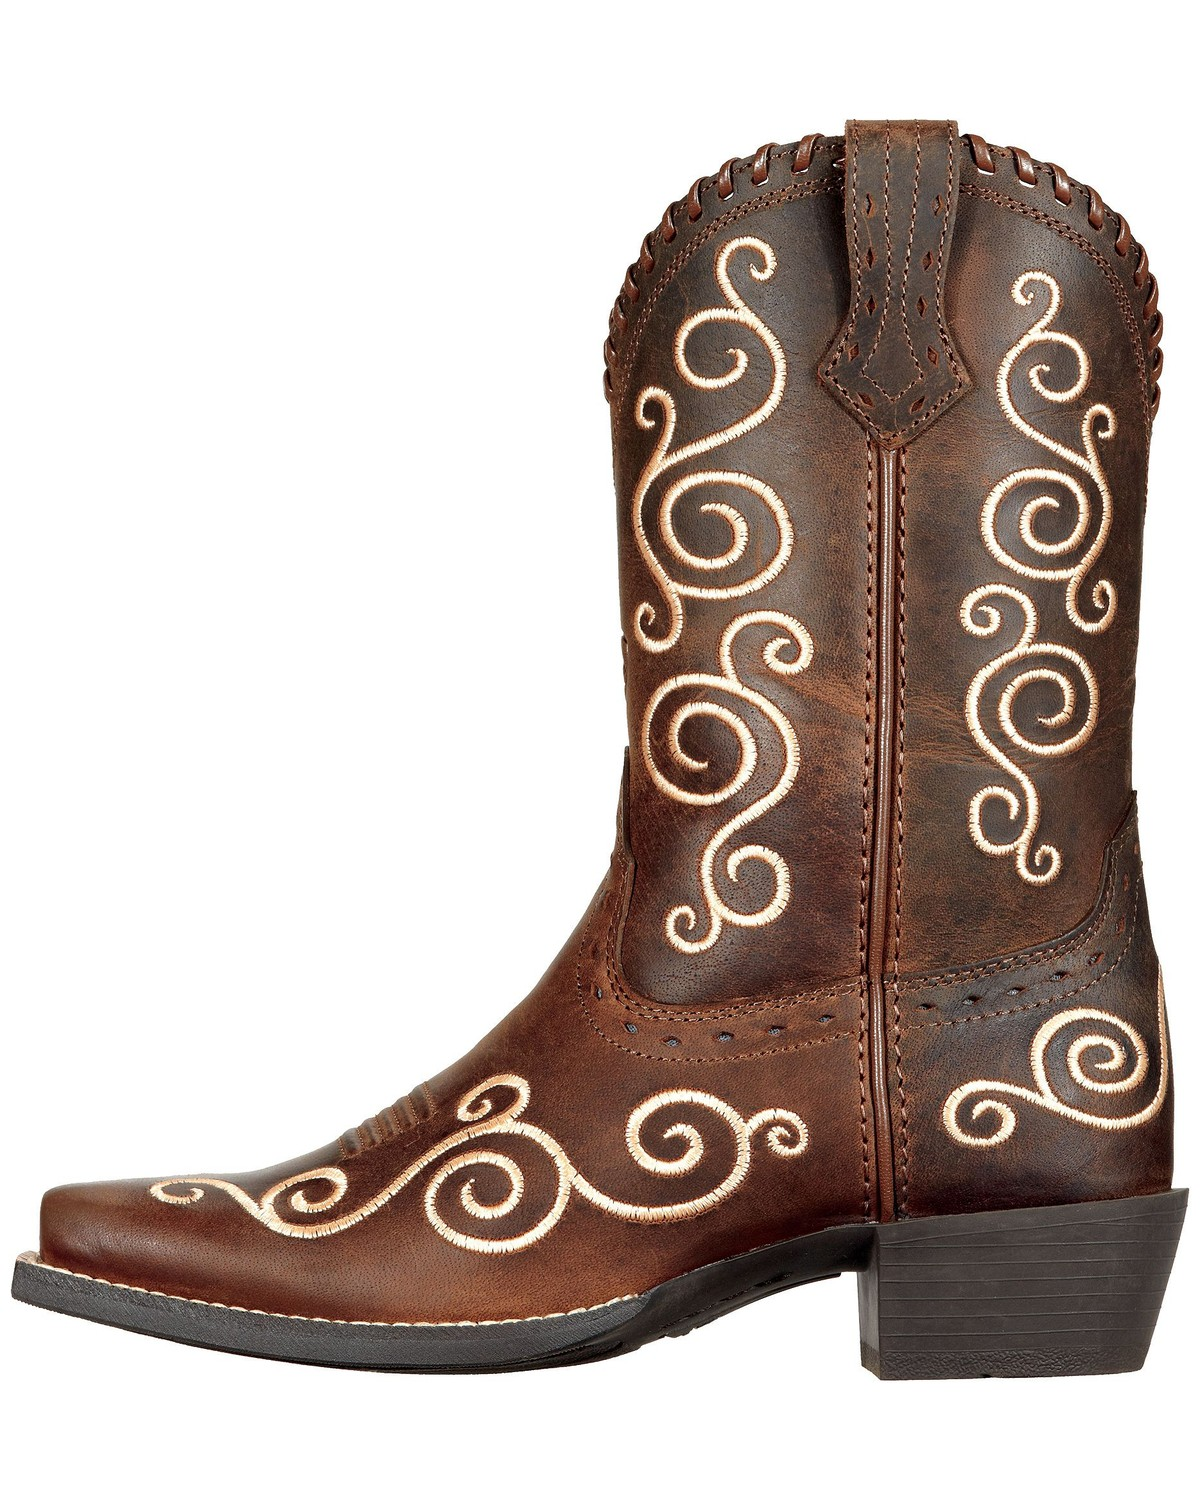 Ariat Youth Girls' Shelleen Cowgirl Boots - Snip Toe | Sheplers